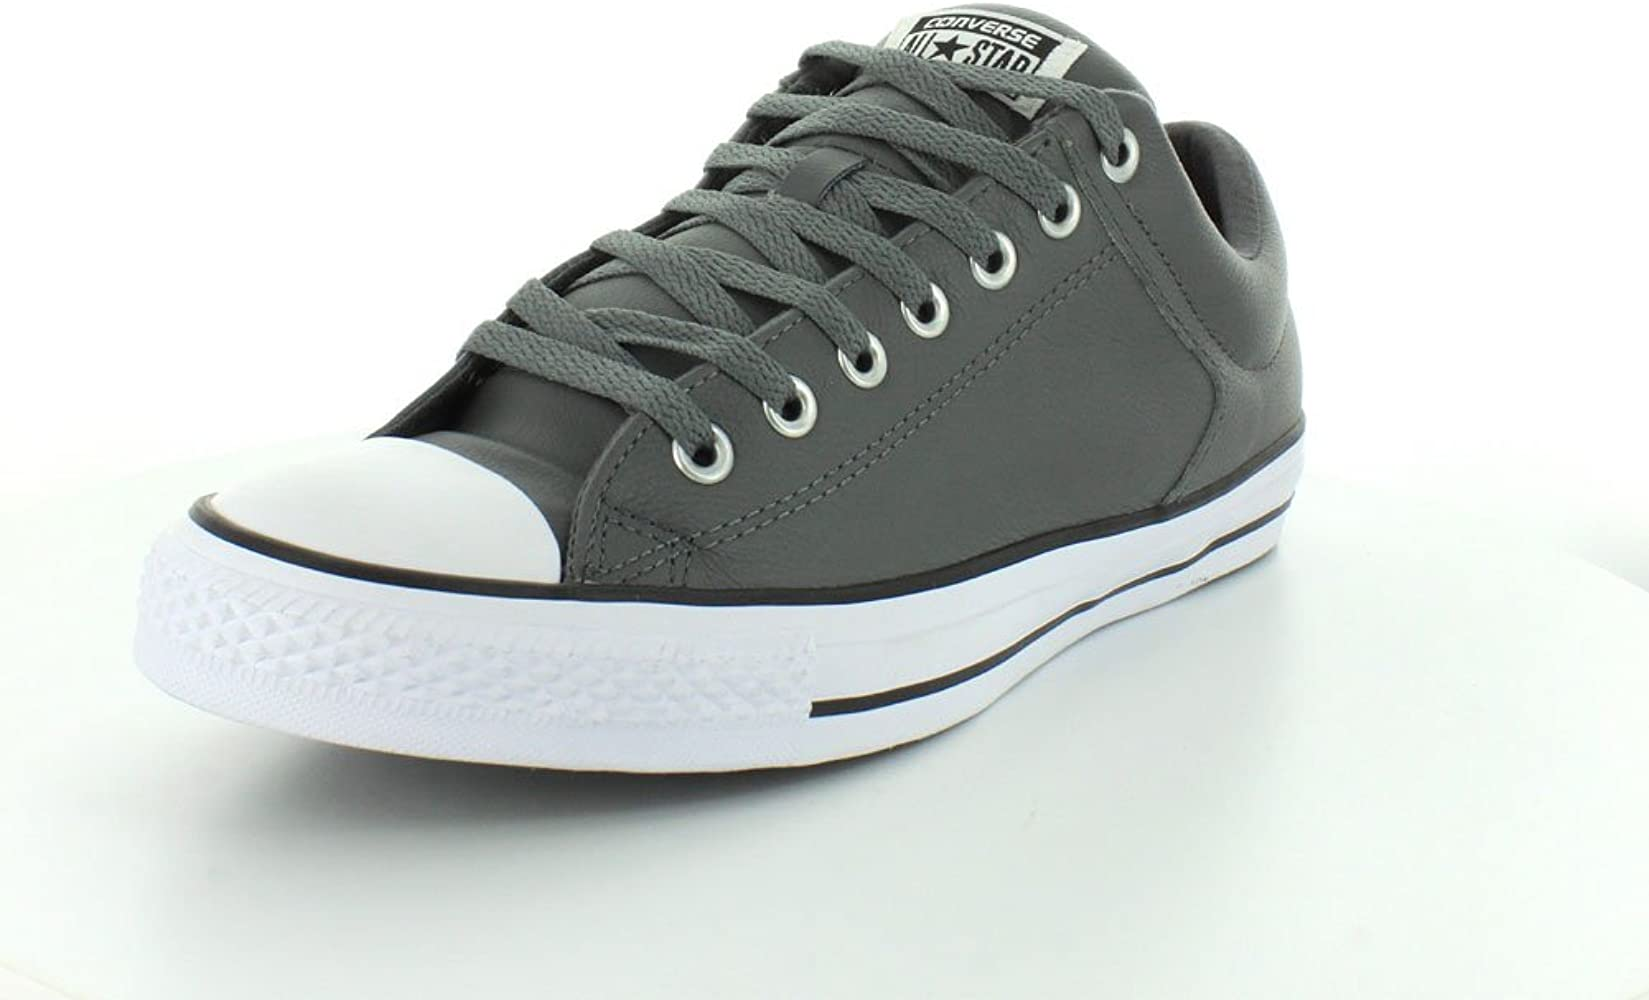 Converse Mens Street Leather Low Top Sneaker